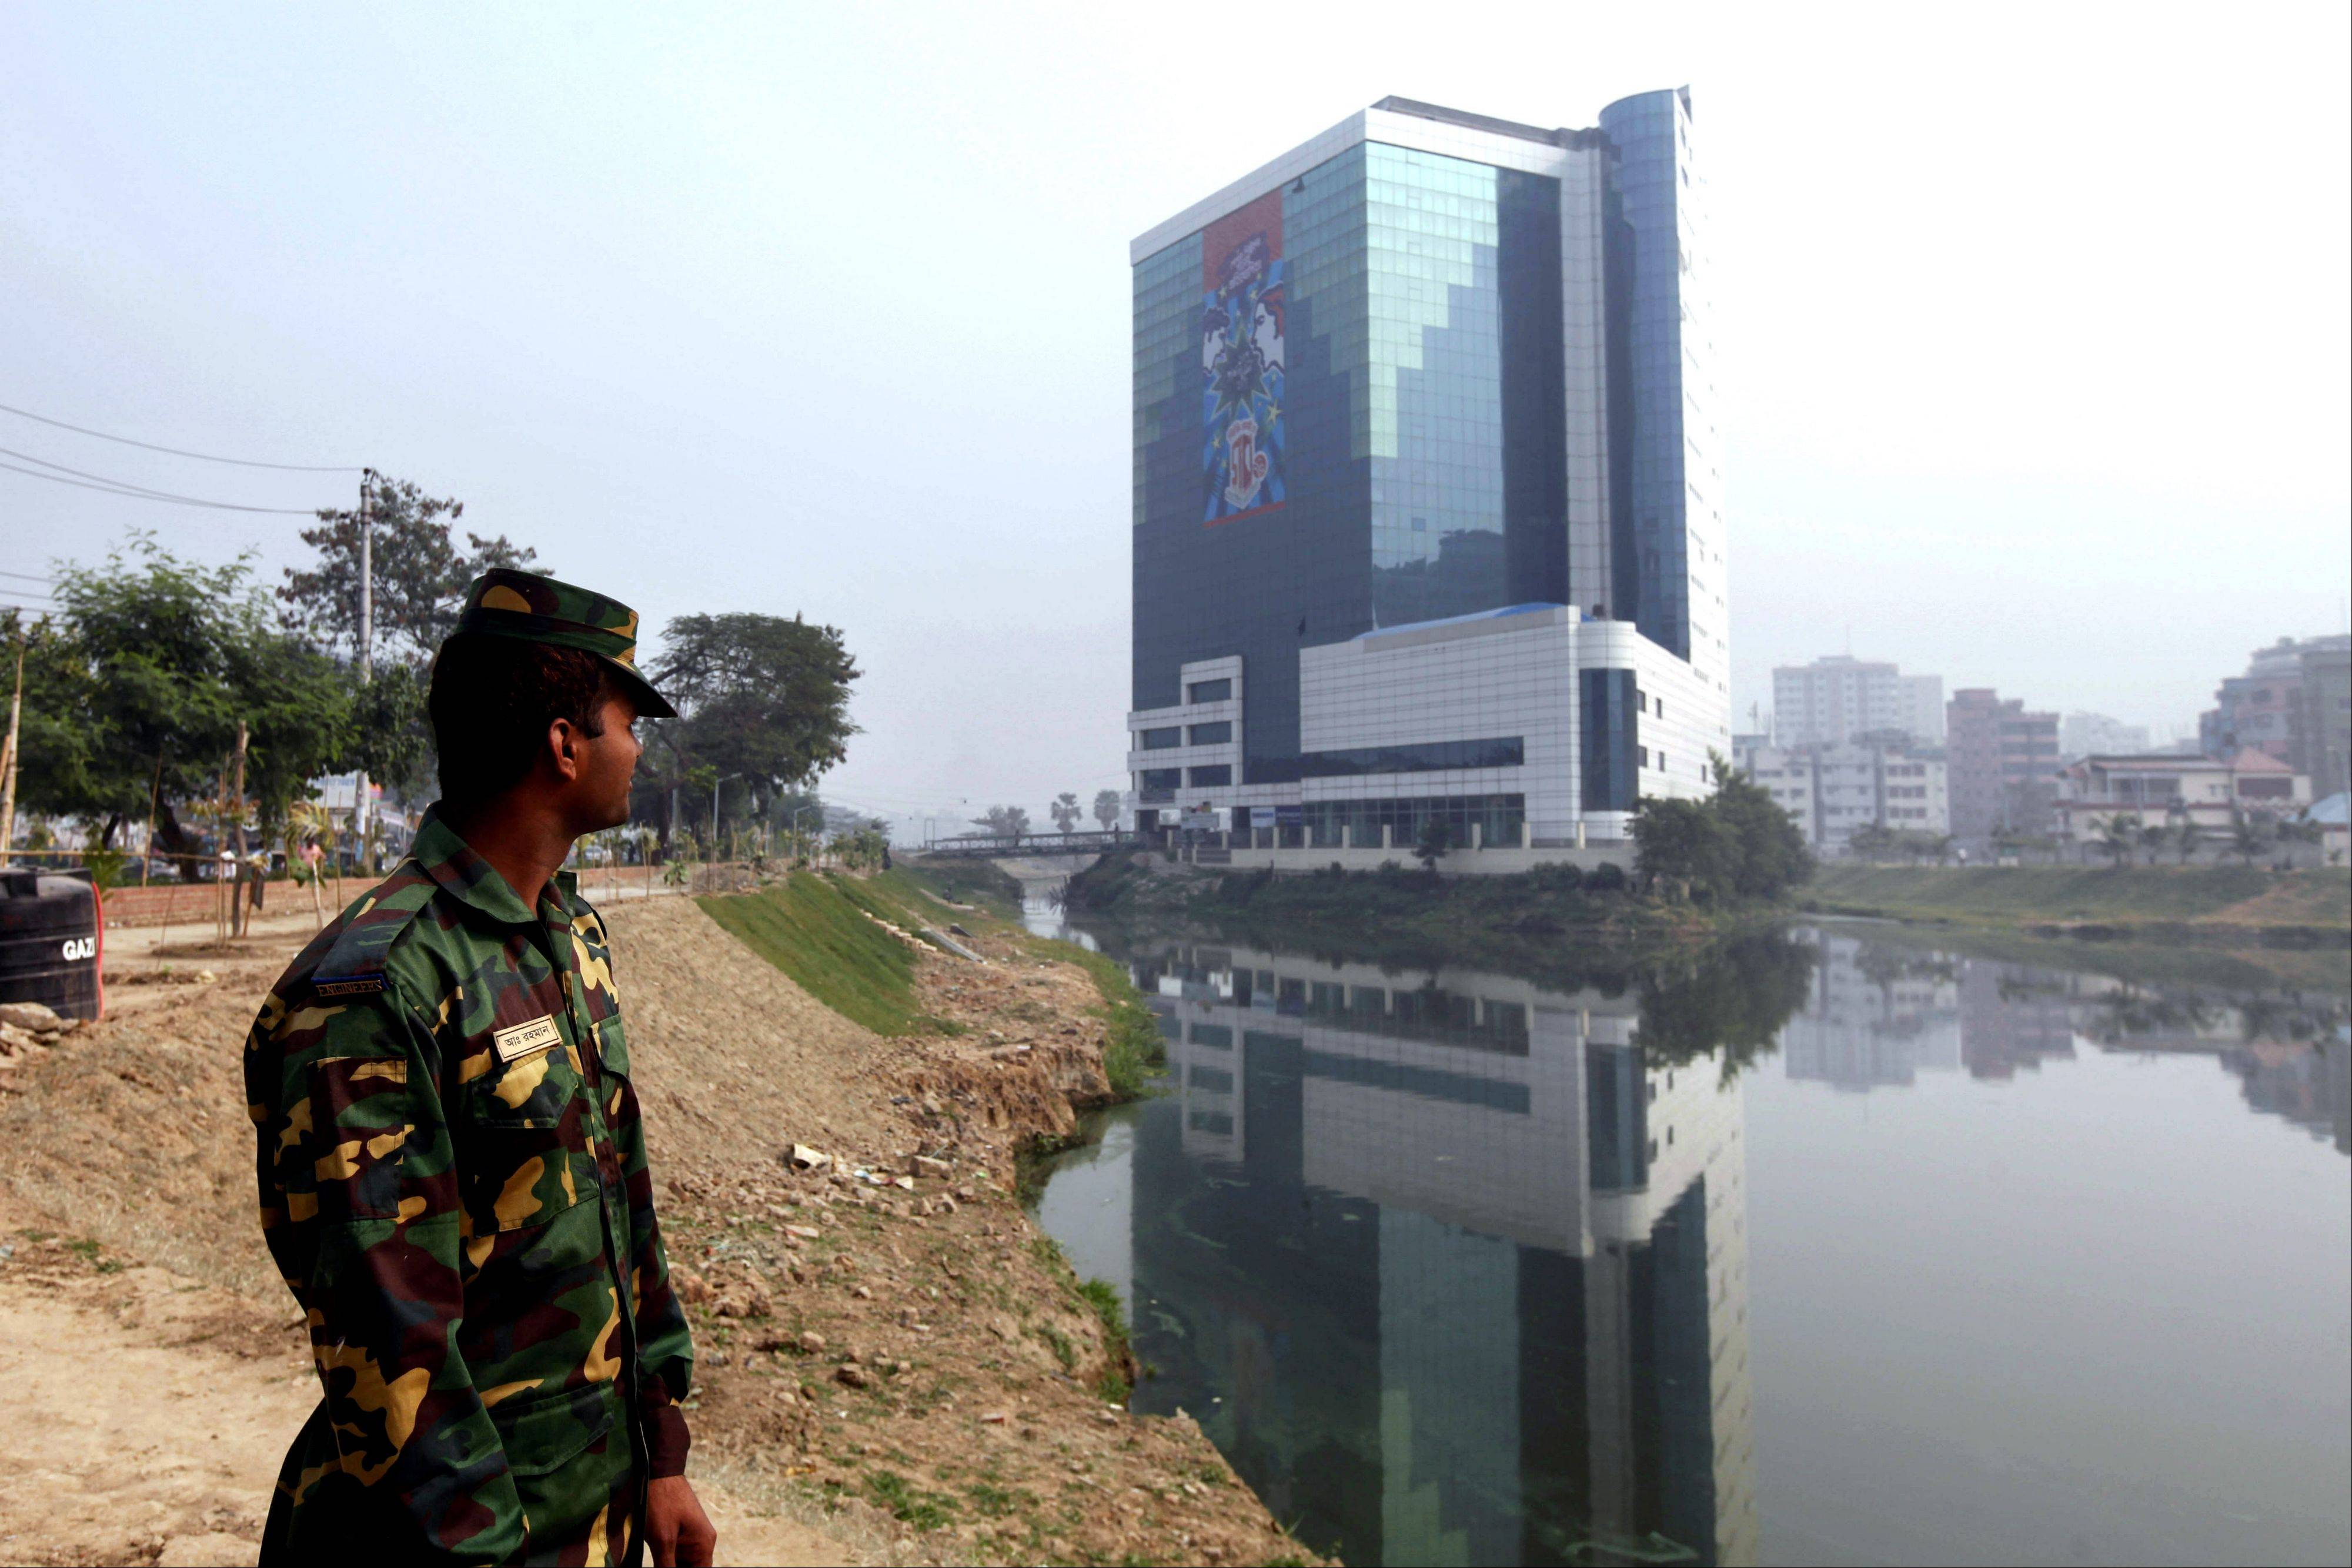 A Bangladesh Army soldier stands near the headquarters of the Bangladesh Garment Manufacturers and Export Association (BGMEA) in Dhaka, Bangladesh.